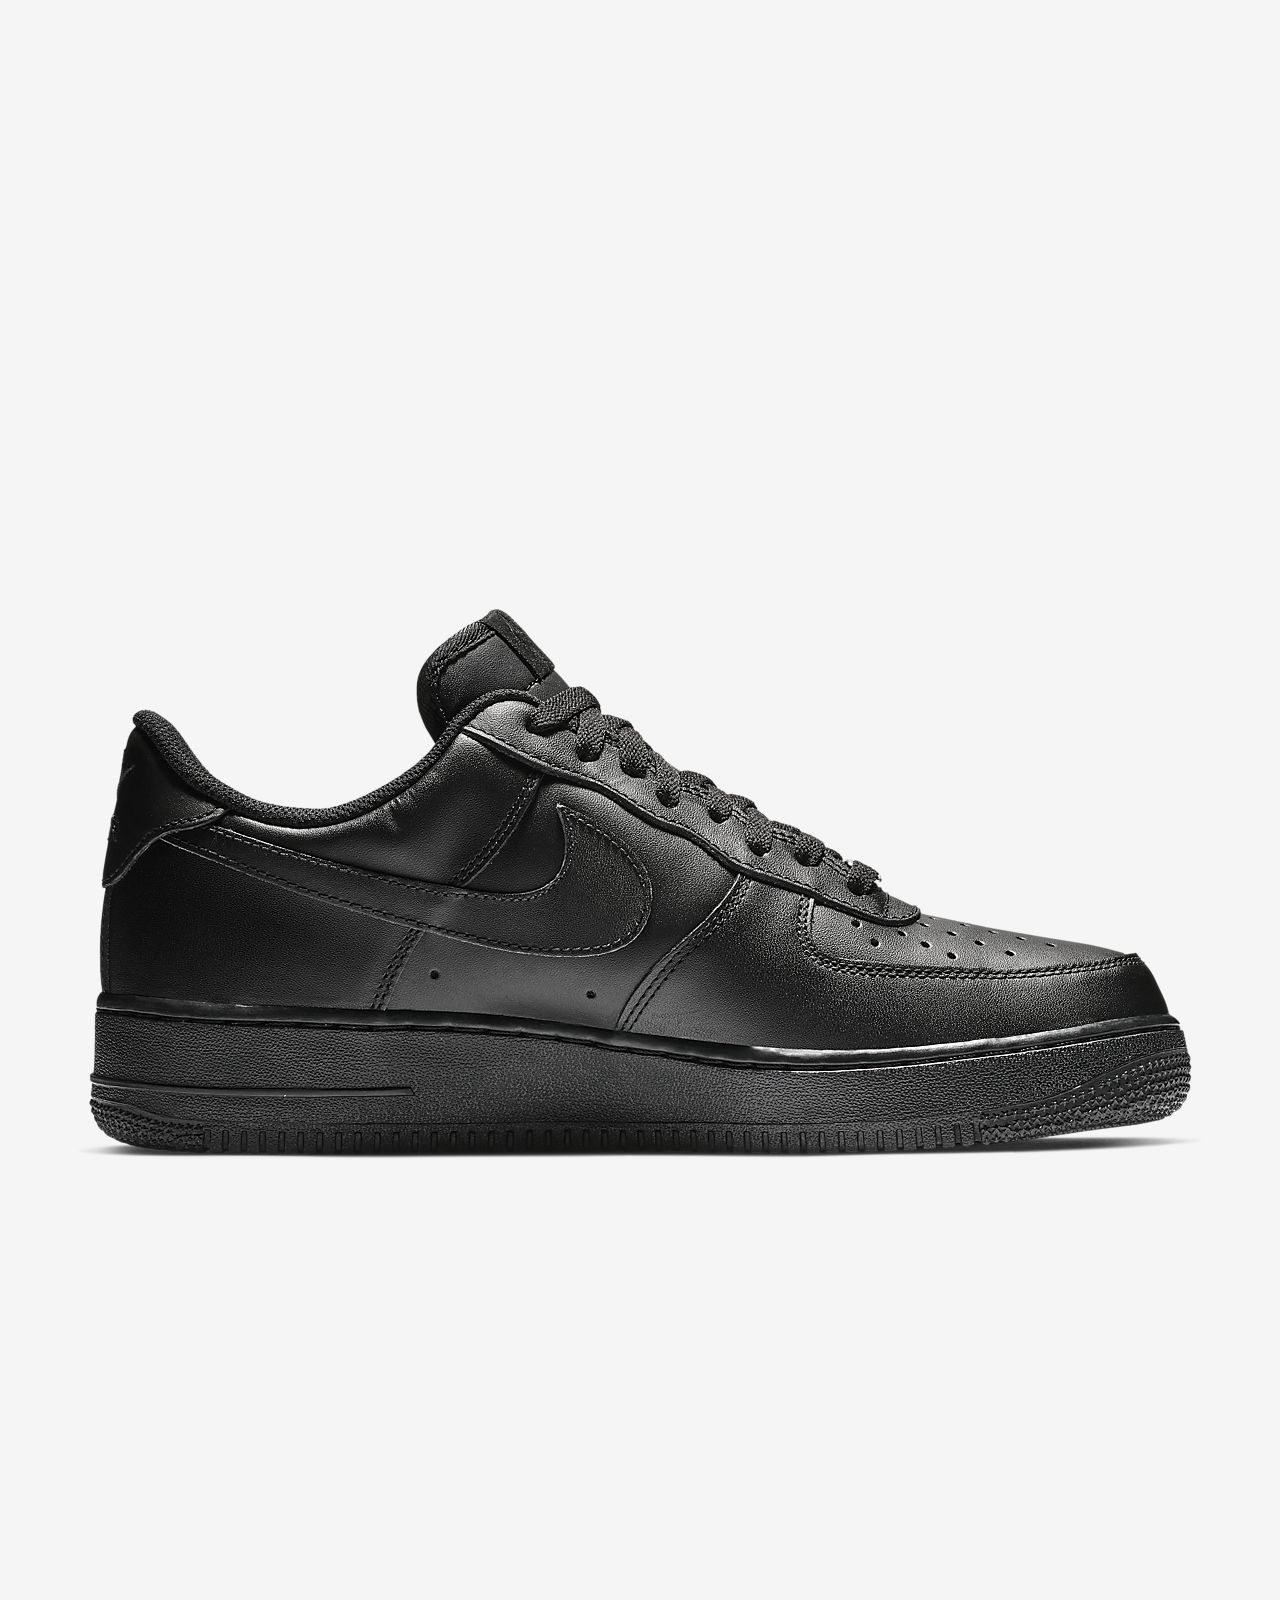 Nike Air Force 1 Men's leather and synthetic Sneakers Black/Black 315122-001 11'